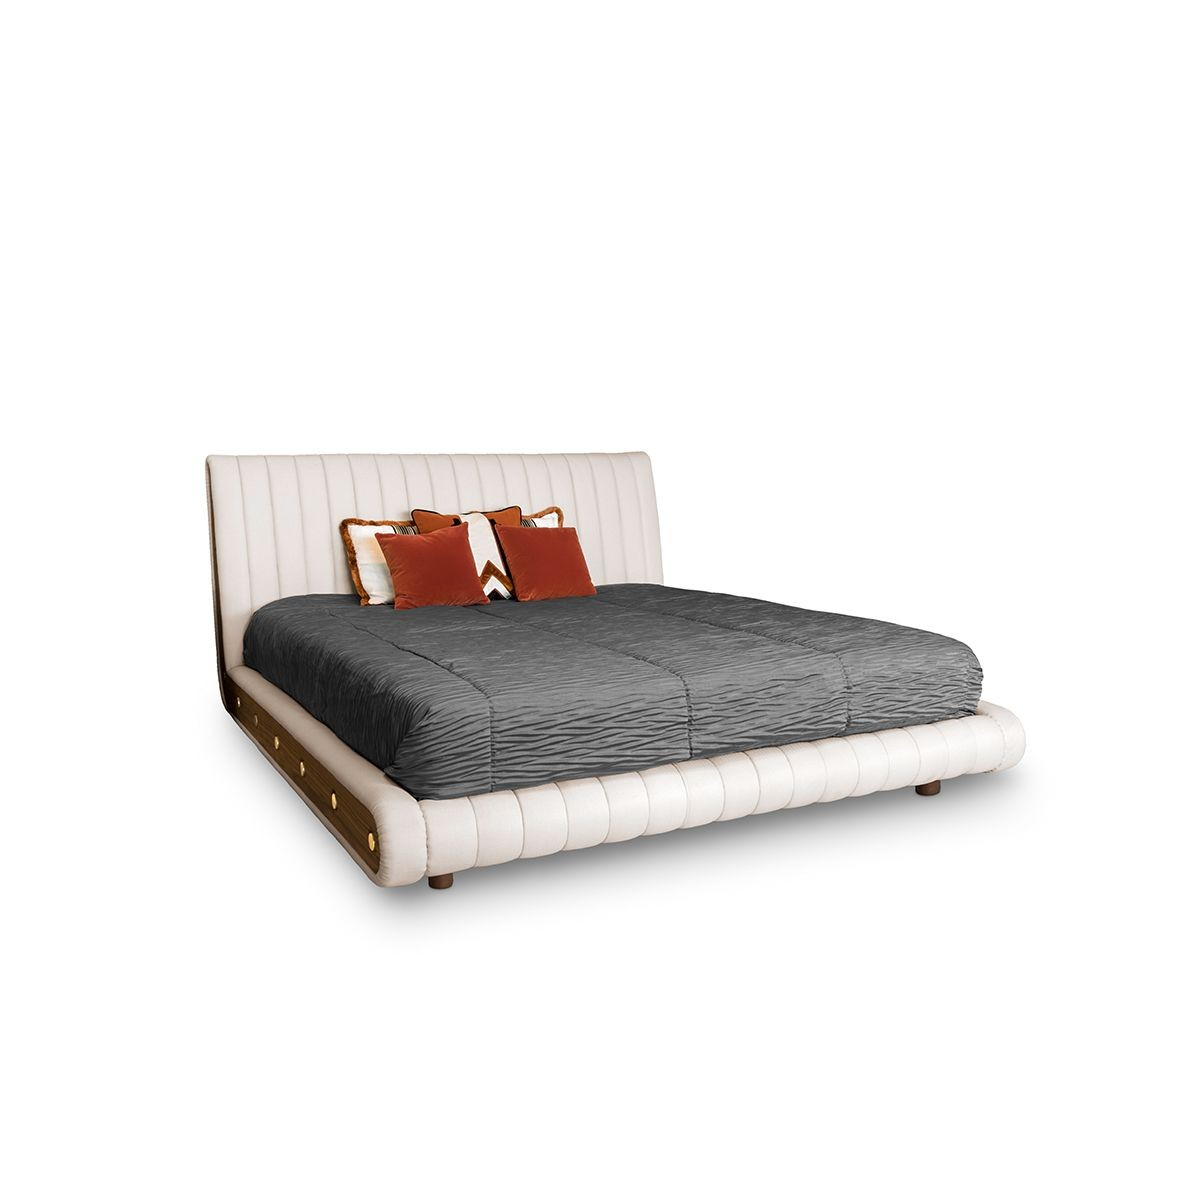 MINELLI BED